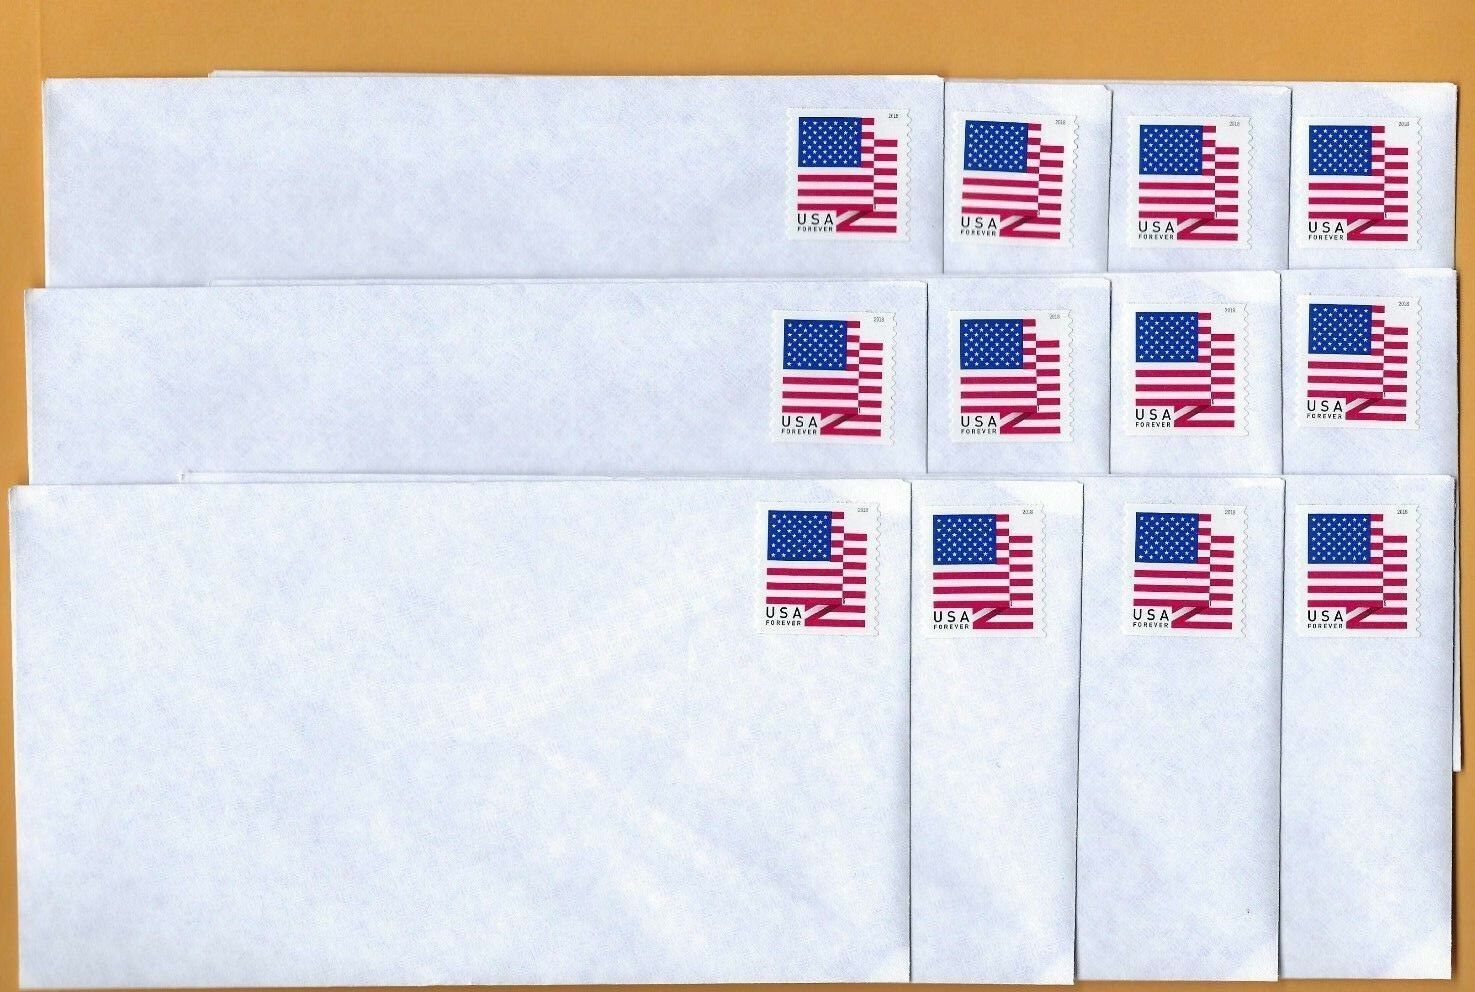 12 Forever Stamped Envelopes. #6 3/4  Security Privacy Tint. 3 5/8 x 6 1/2 inch